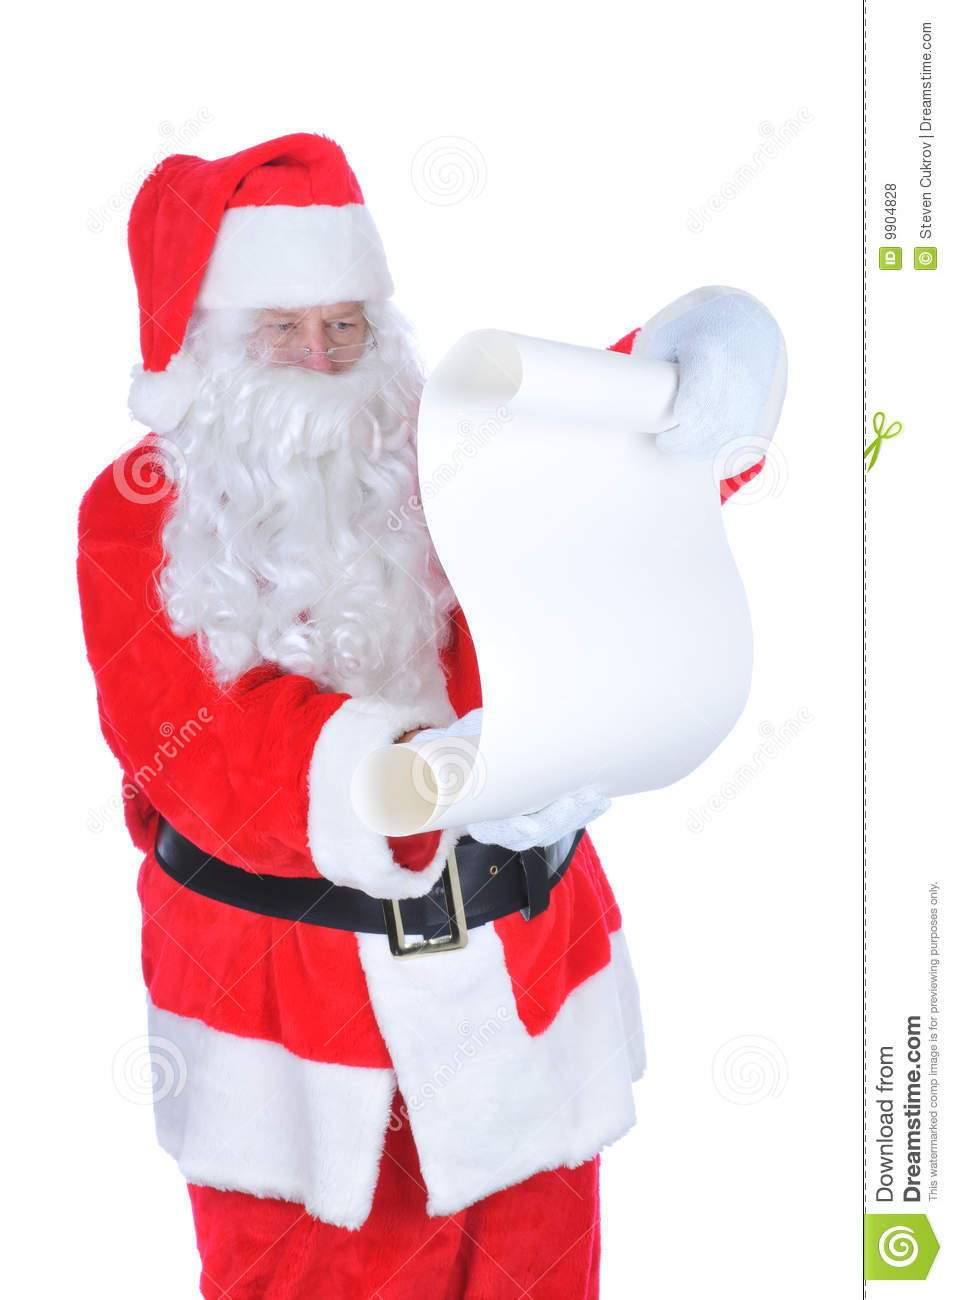 Santa Claus with Blank Naughty and Nice List isolated on white.